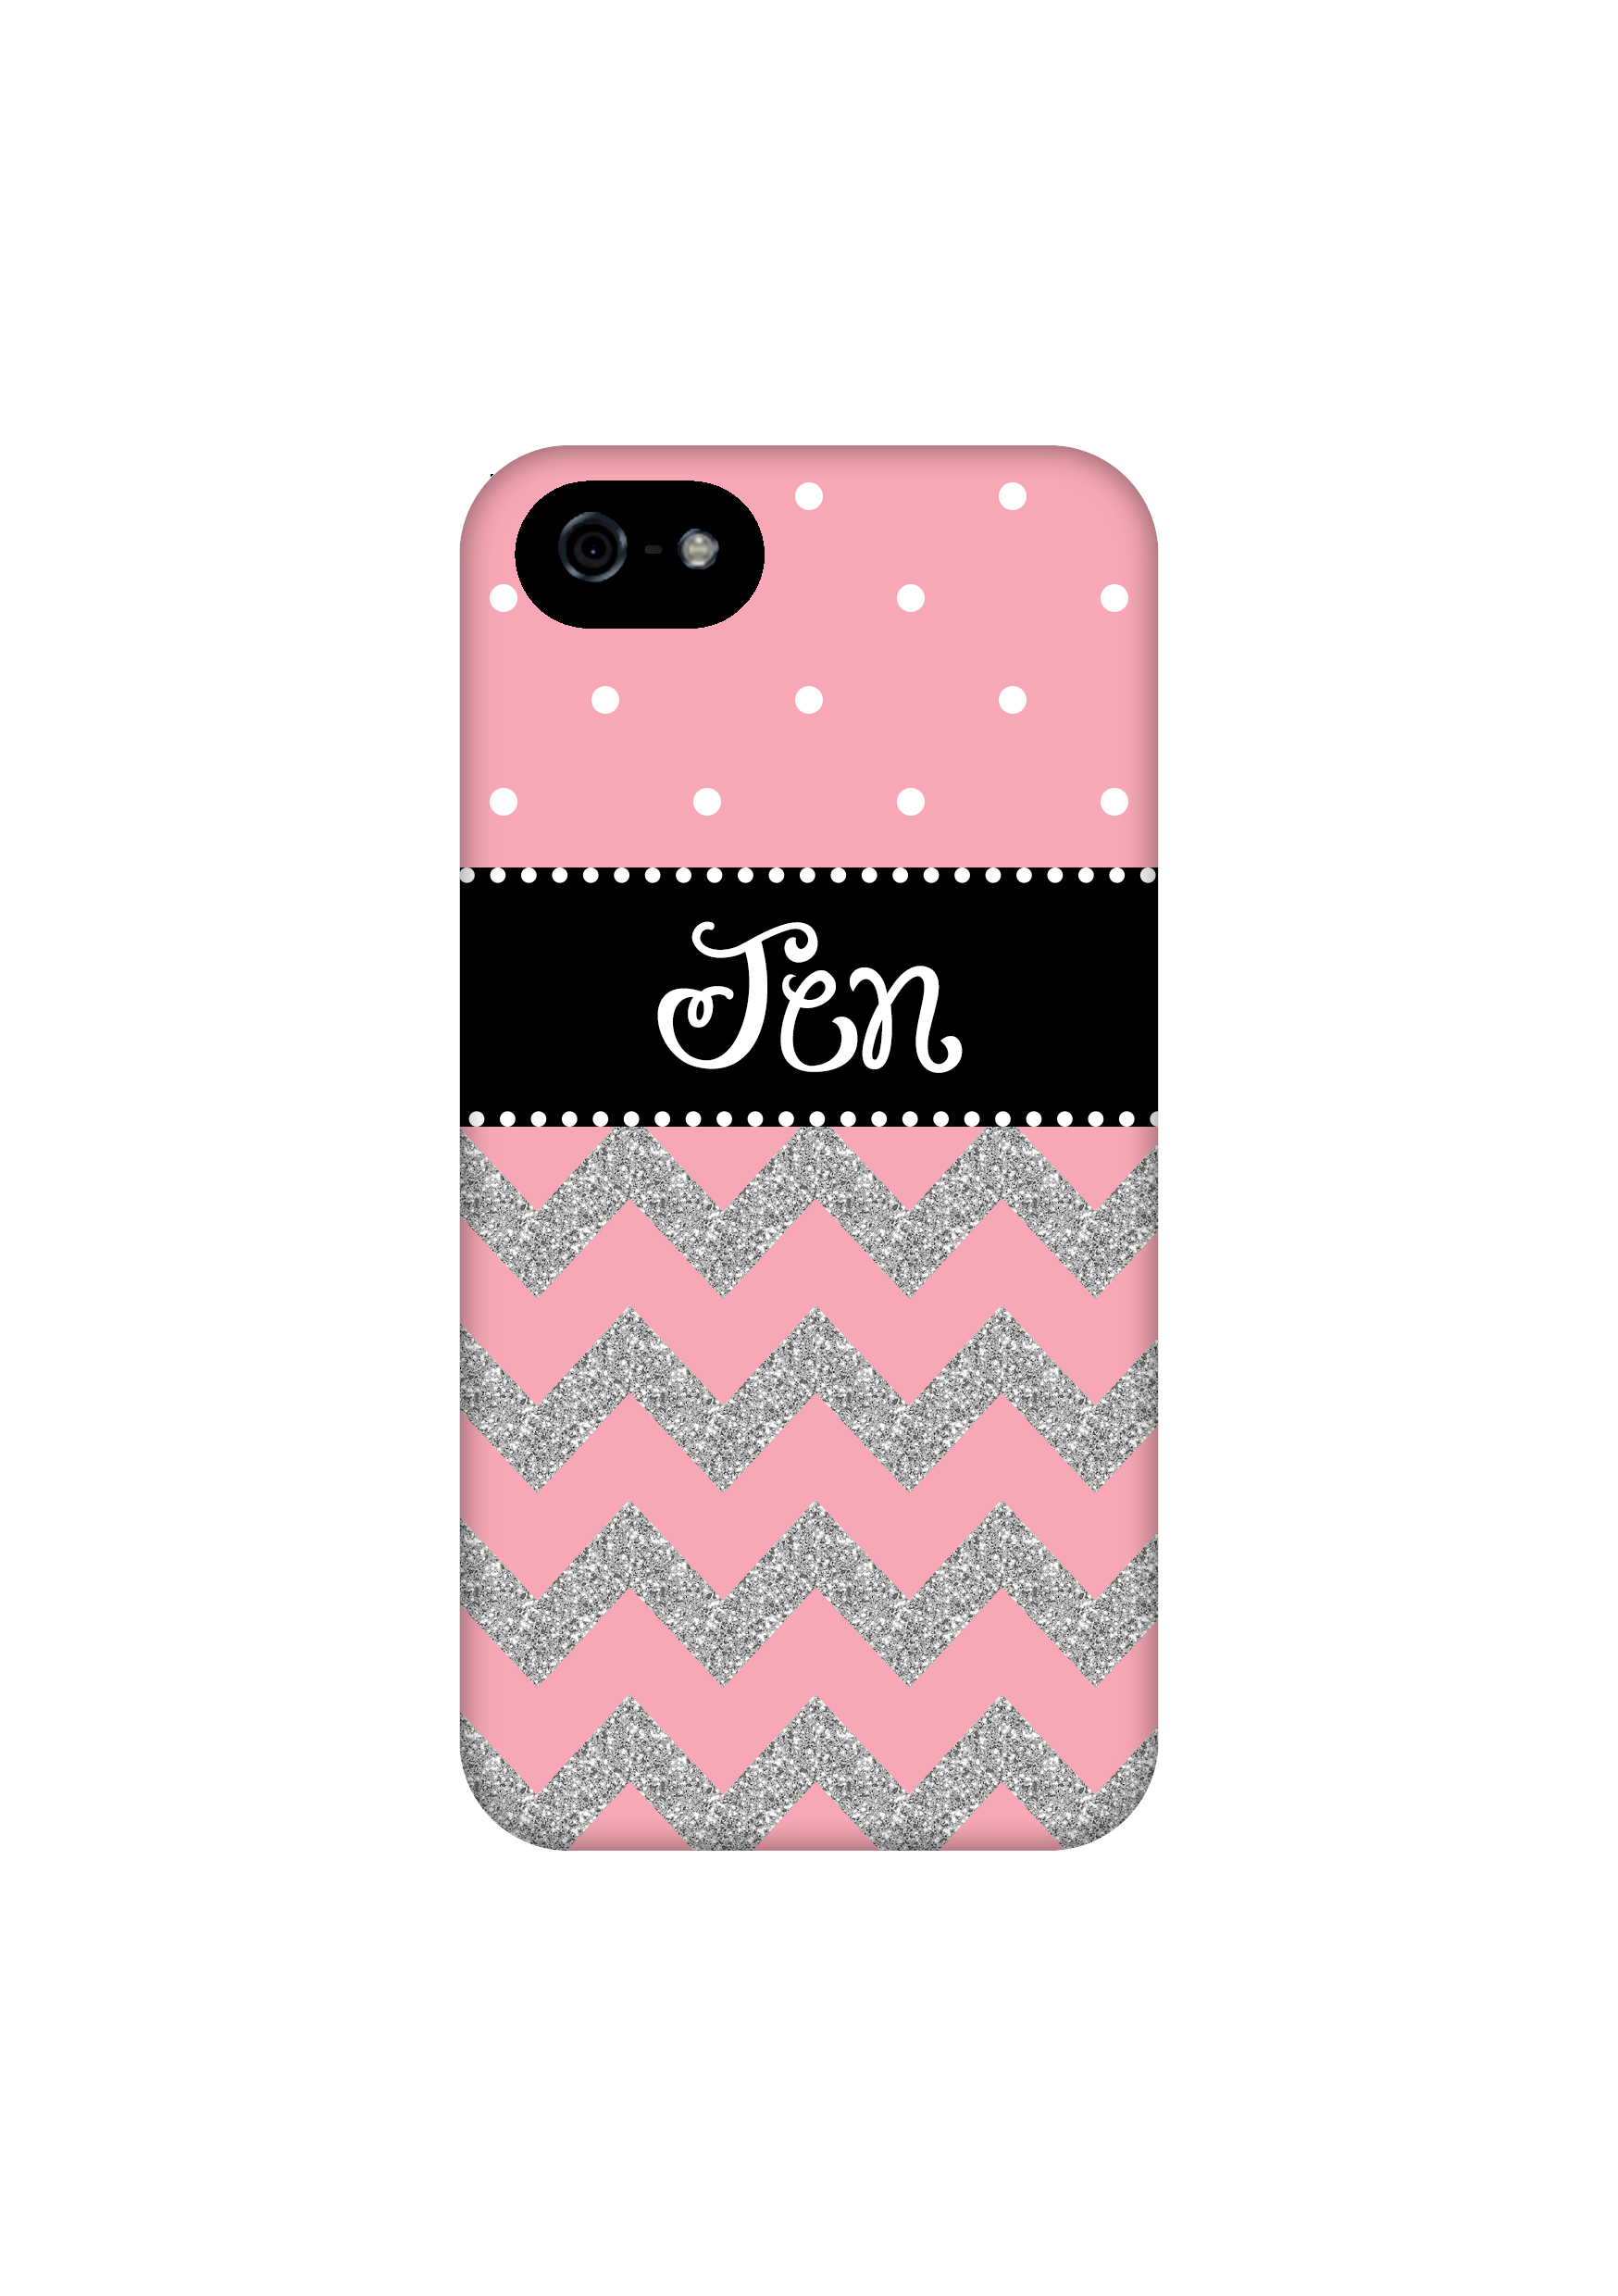 Light Pink Chevron With Silver Glitter Personalized Iphone 6 Case Iphone 6 Plus Case Iphone 5c Case Iphone 5 5s Case Iphone 4 4s Case